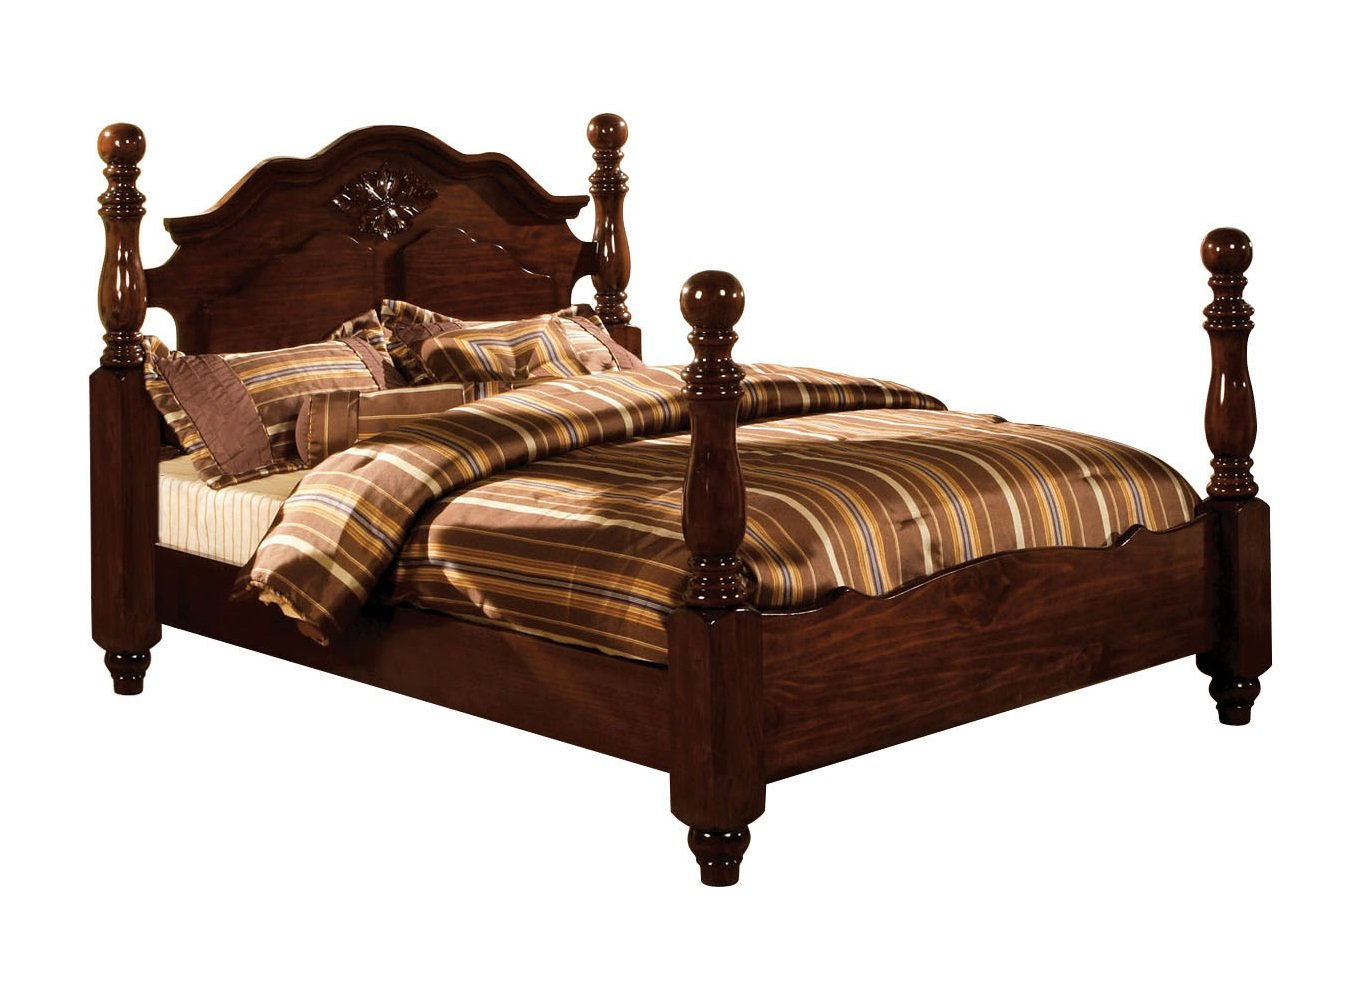 Furniture of America Scarlette Classic Four Poster Bed, Eastern King, Glossy Dark Pine